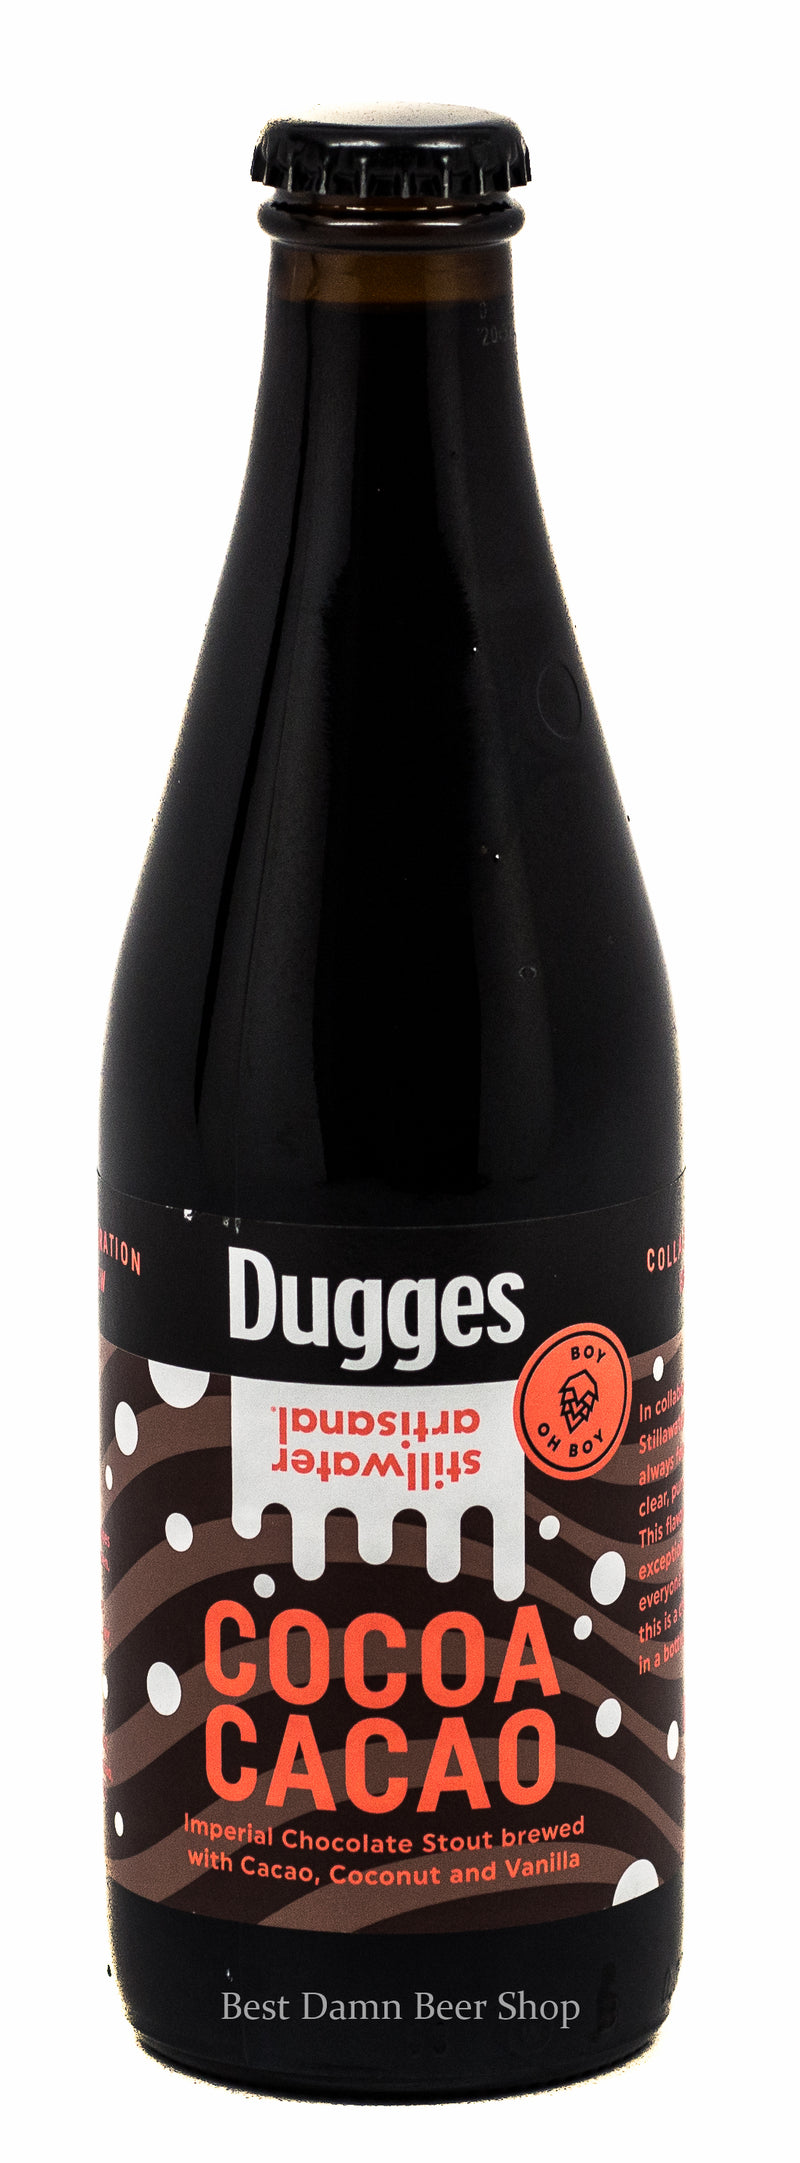 STILLWATER DUGGES COCOA CACAO IMPERIAL STOUT 11.2oz